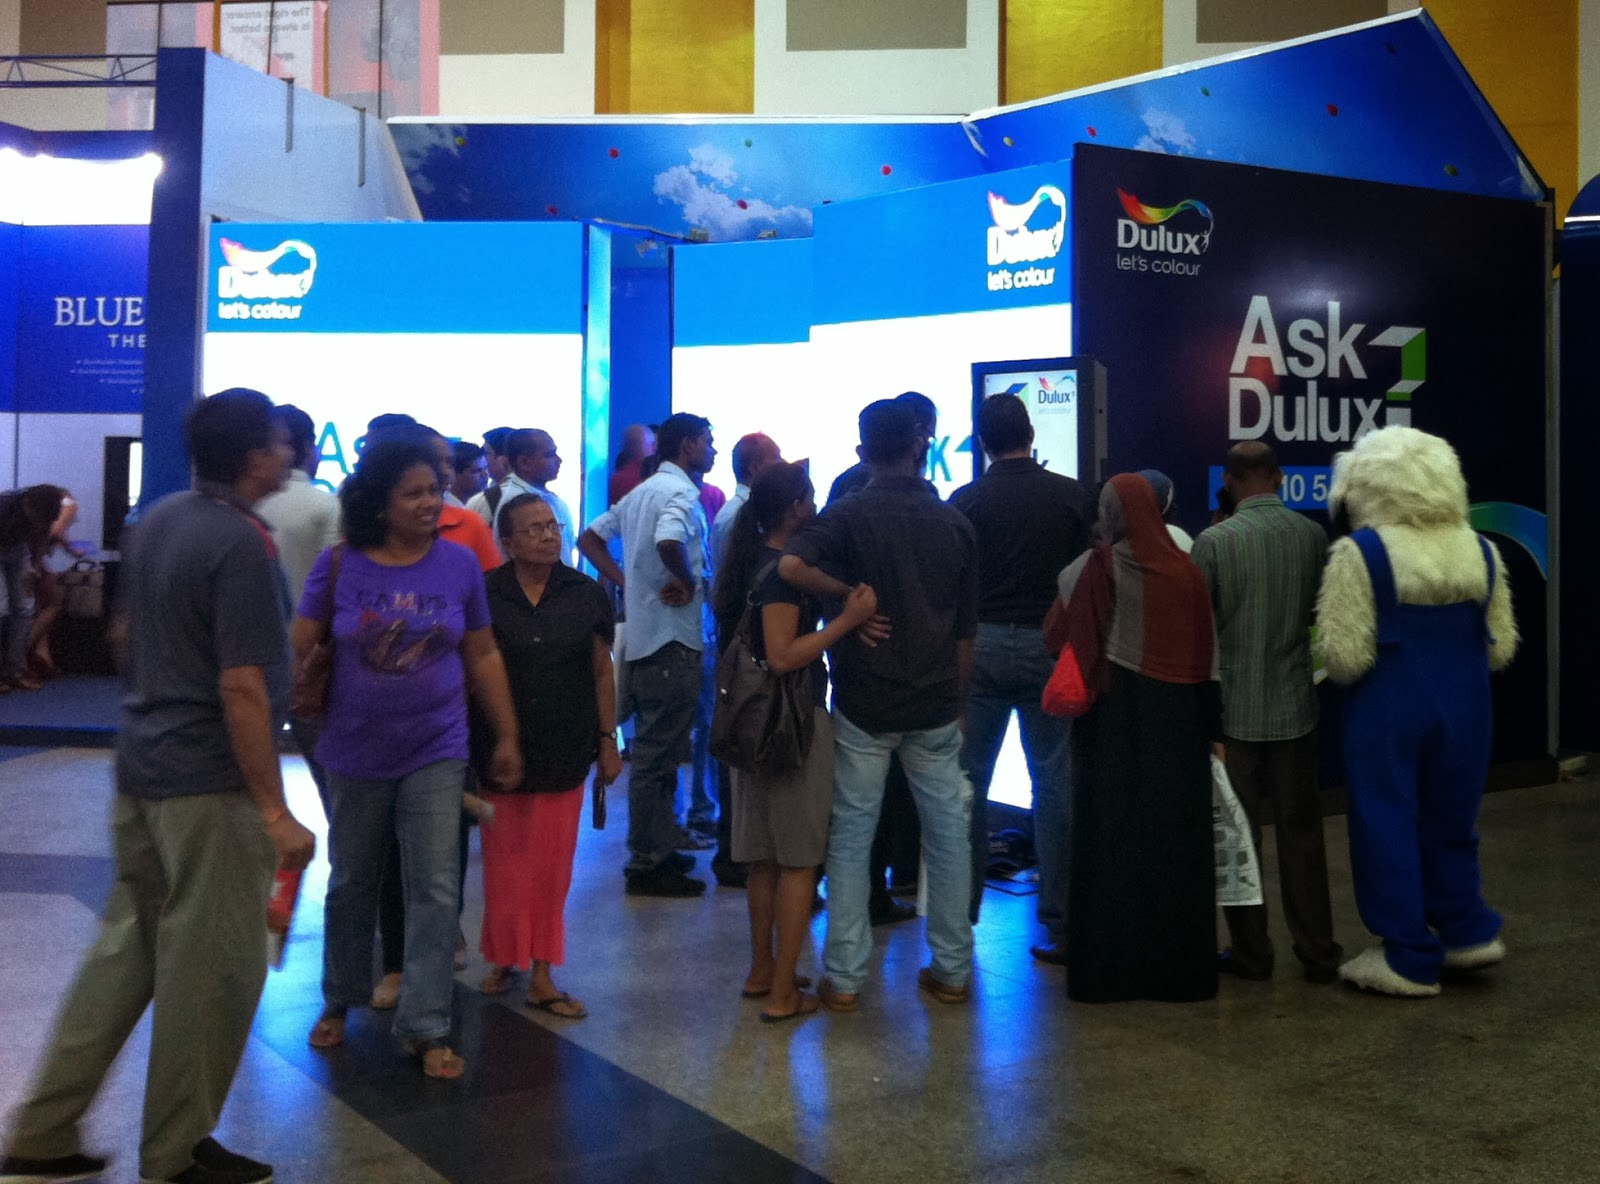 Visitors view video messages on Dulux's LED wall at The Architect 2014.